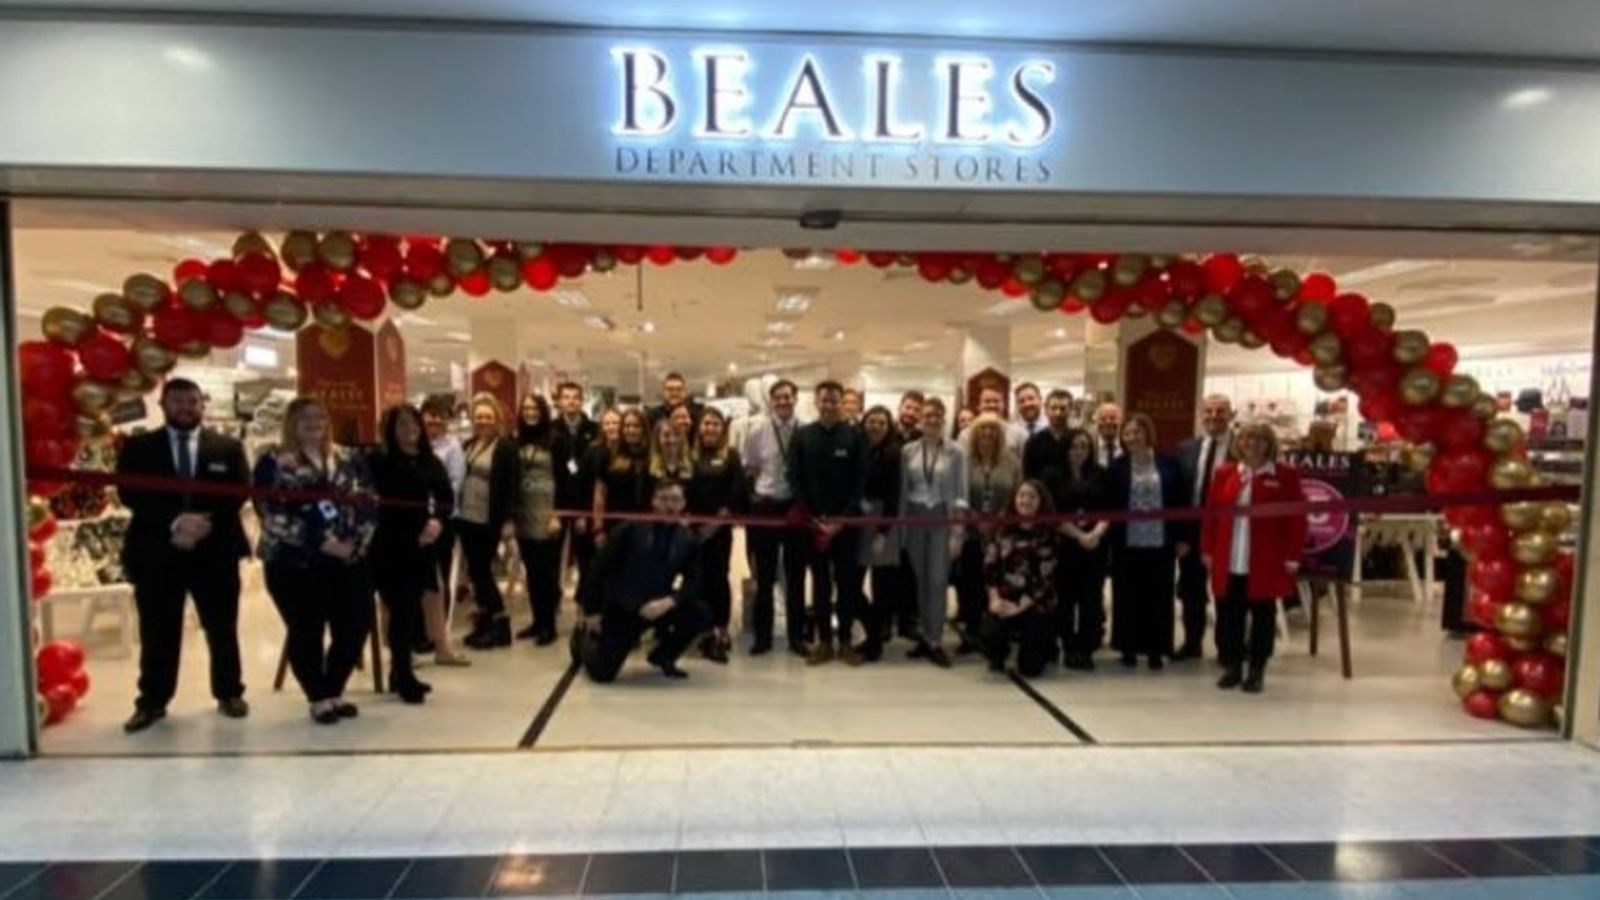 Department store chain Beales reviews financing options - EpicNews